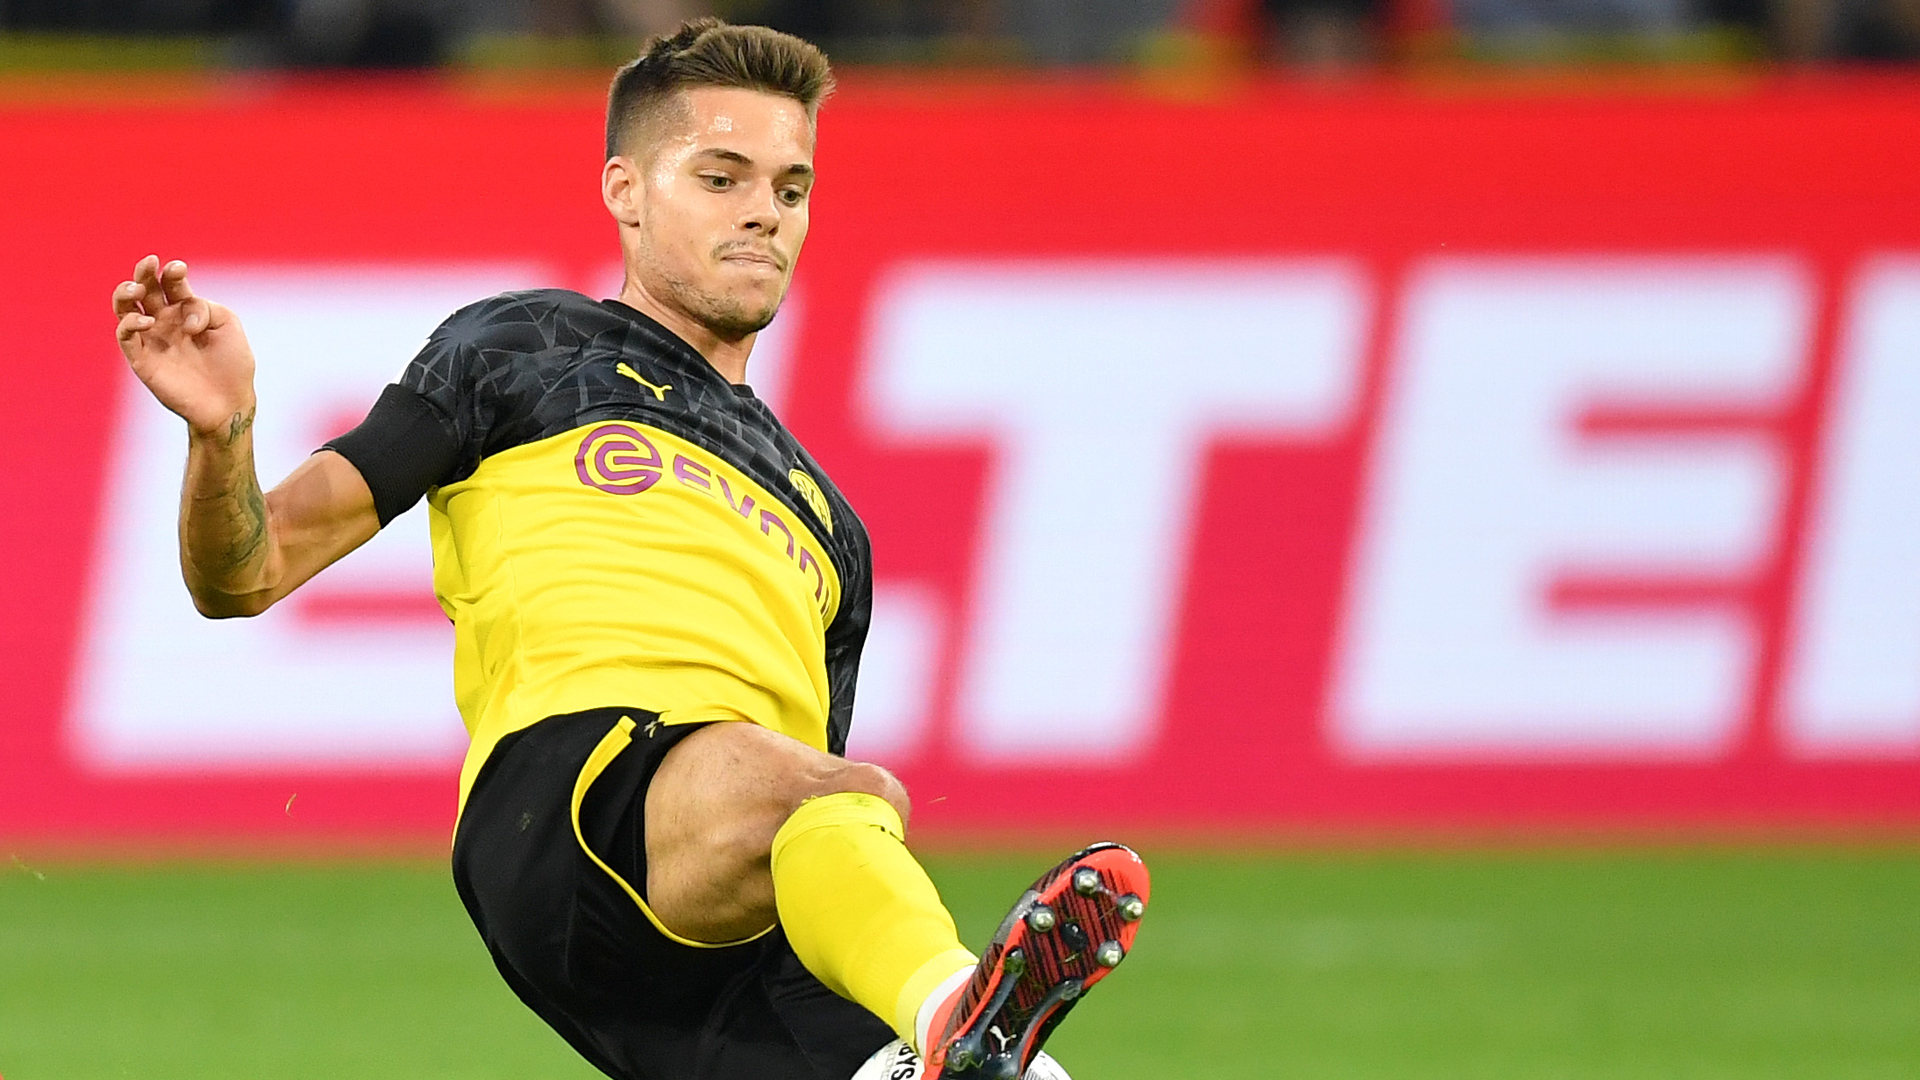 Julian Weigl Alter